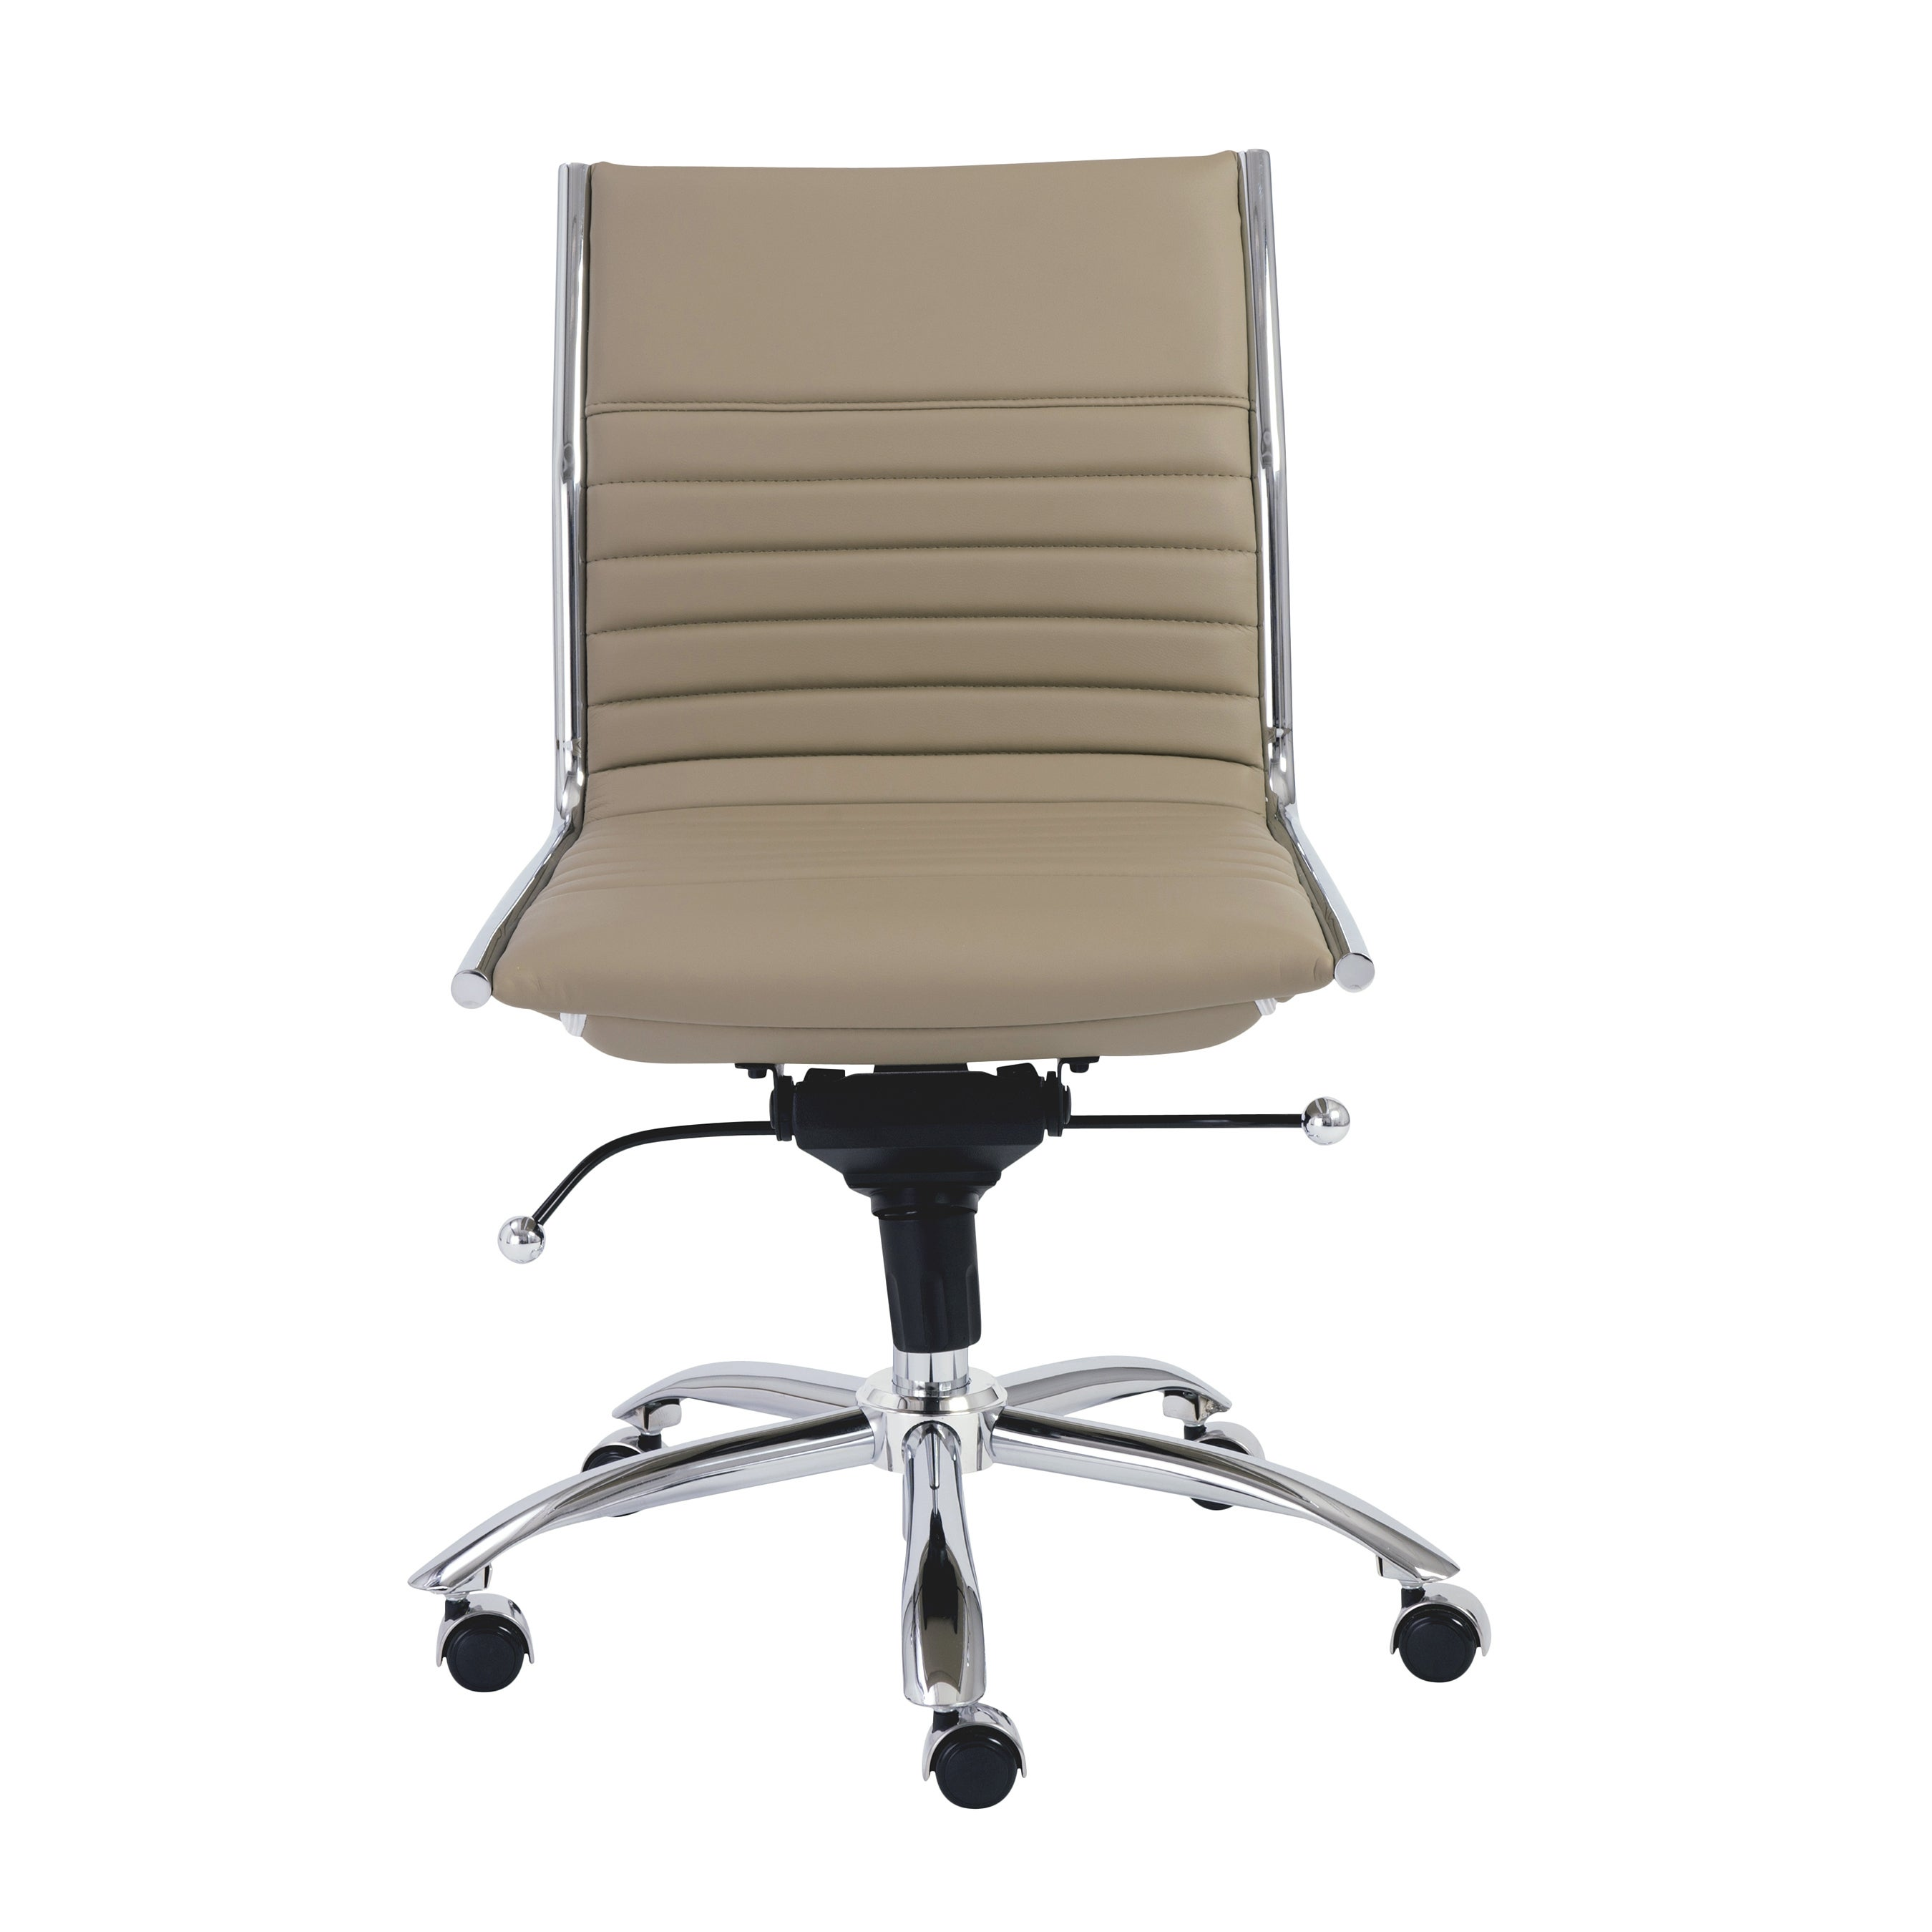 Shop Dirk Taupe/ Chrome Low Back Armless Office Chair - Free ... Low Back Office Chair on names of different types of chairs, low back medical chairs, cypress table chairs, low back sofa chair, low back side chairs, low back plastic chair, low back executive chairs, low back ottomans, low comfortable chairs, low-back wood chairs, low back pool chairs, low back headboards, low back task chairs, low back accent chairs, low back ergonomic chairs, low back beach chairs, low back living room furniture, low back conference chair, high back office chairs, low japanese chairs,